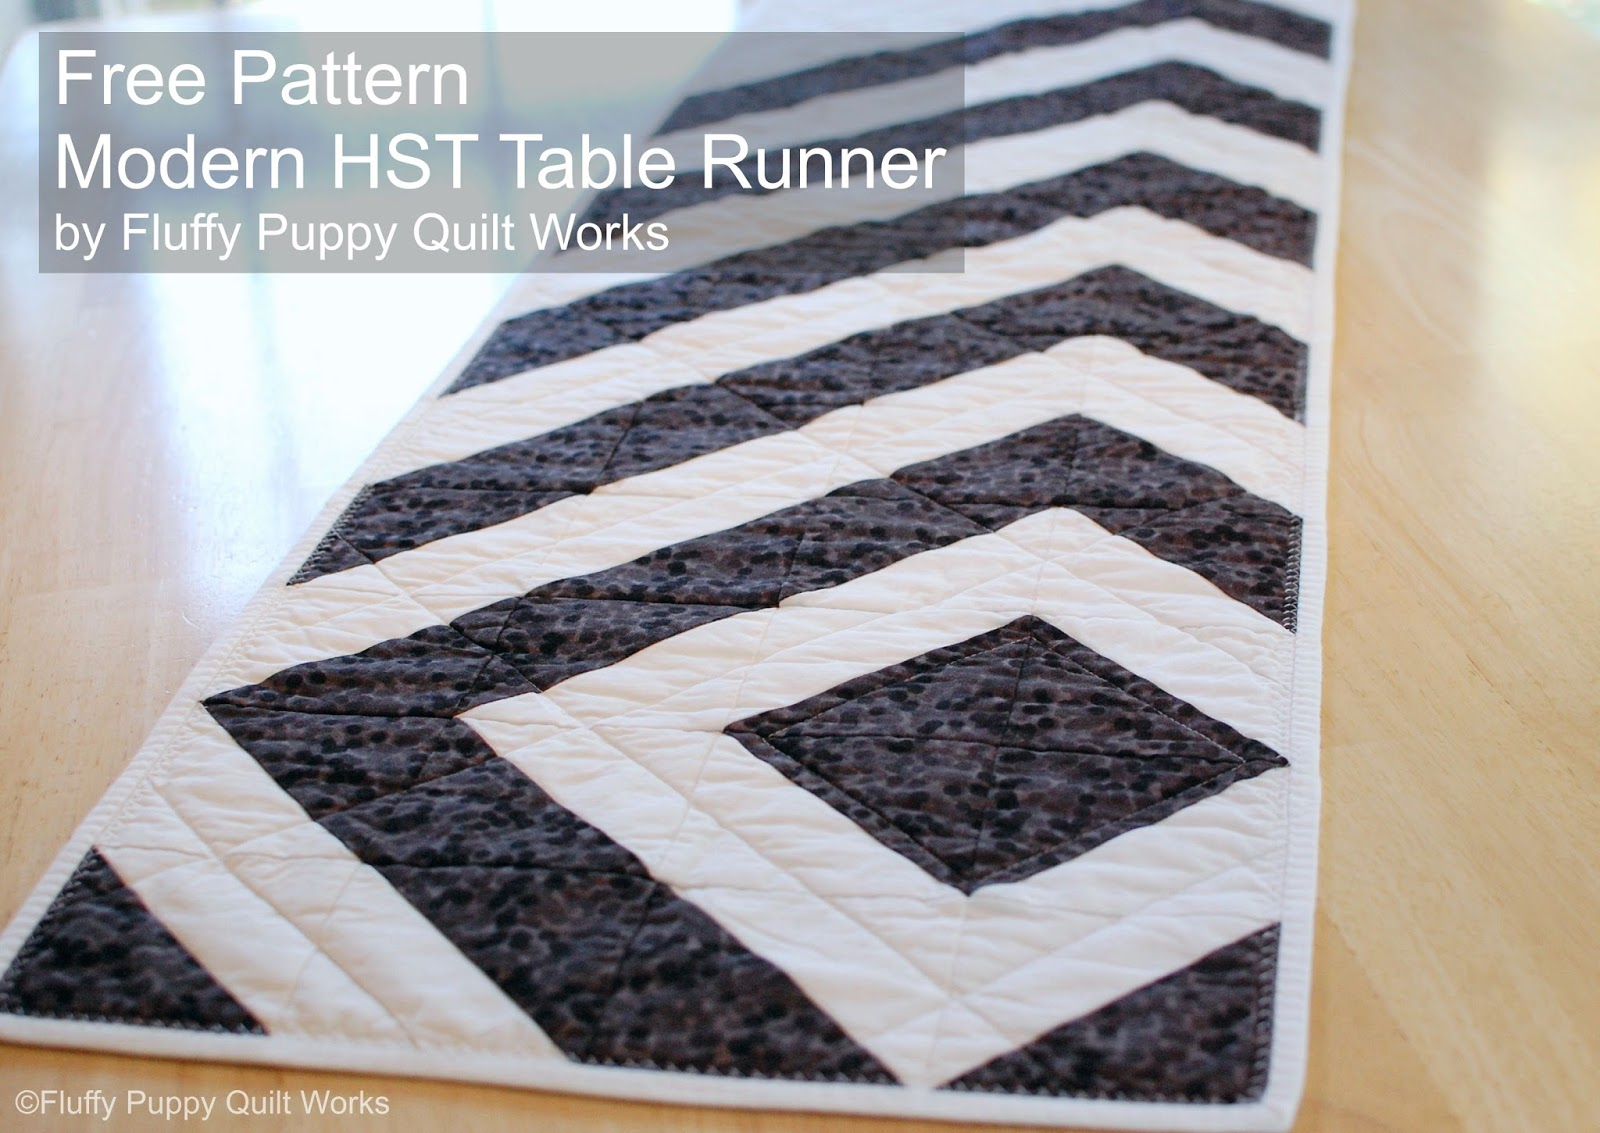 Free PDF Pattern: Modern HST Table Runner